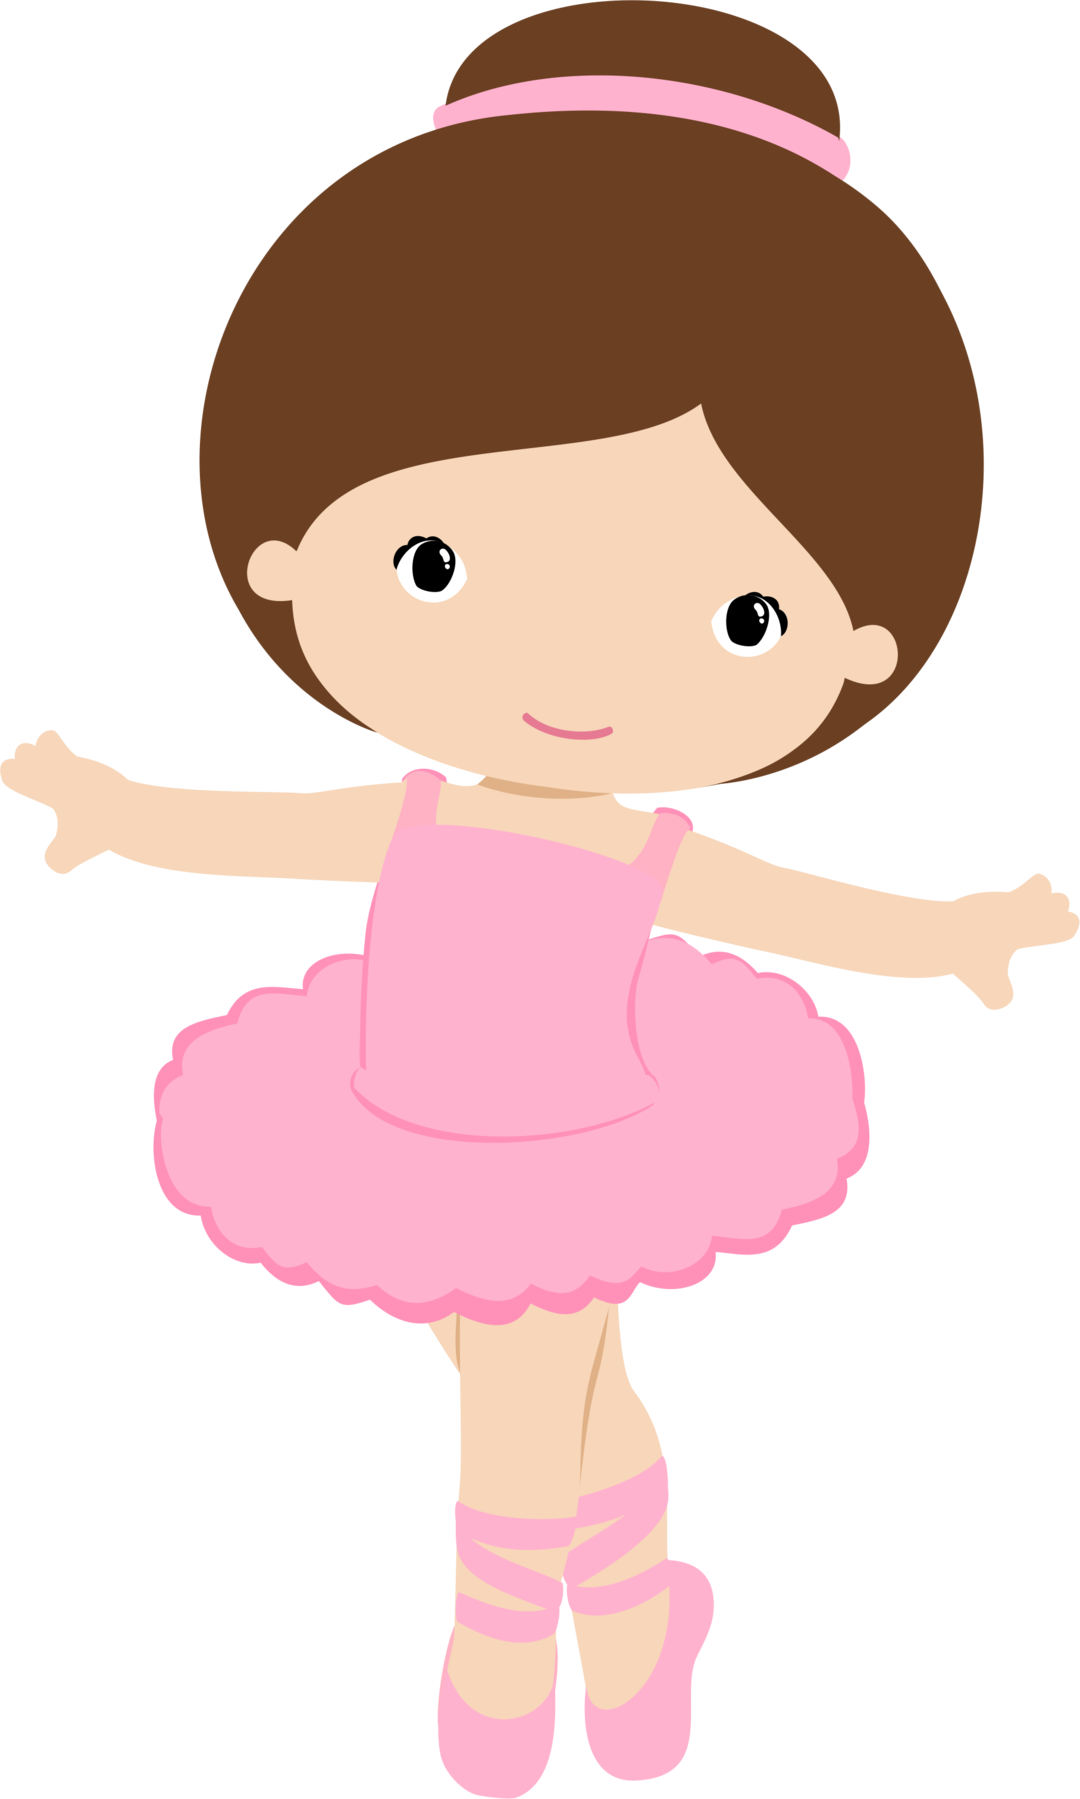 shared ver todas. Ballet clipart bunny graphic royalty free download